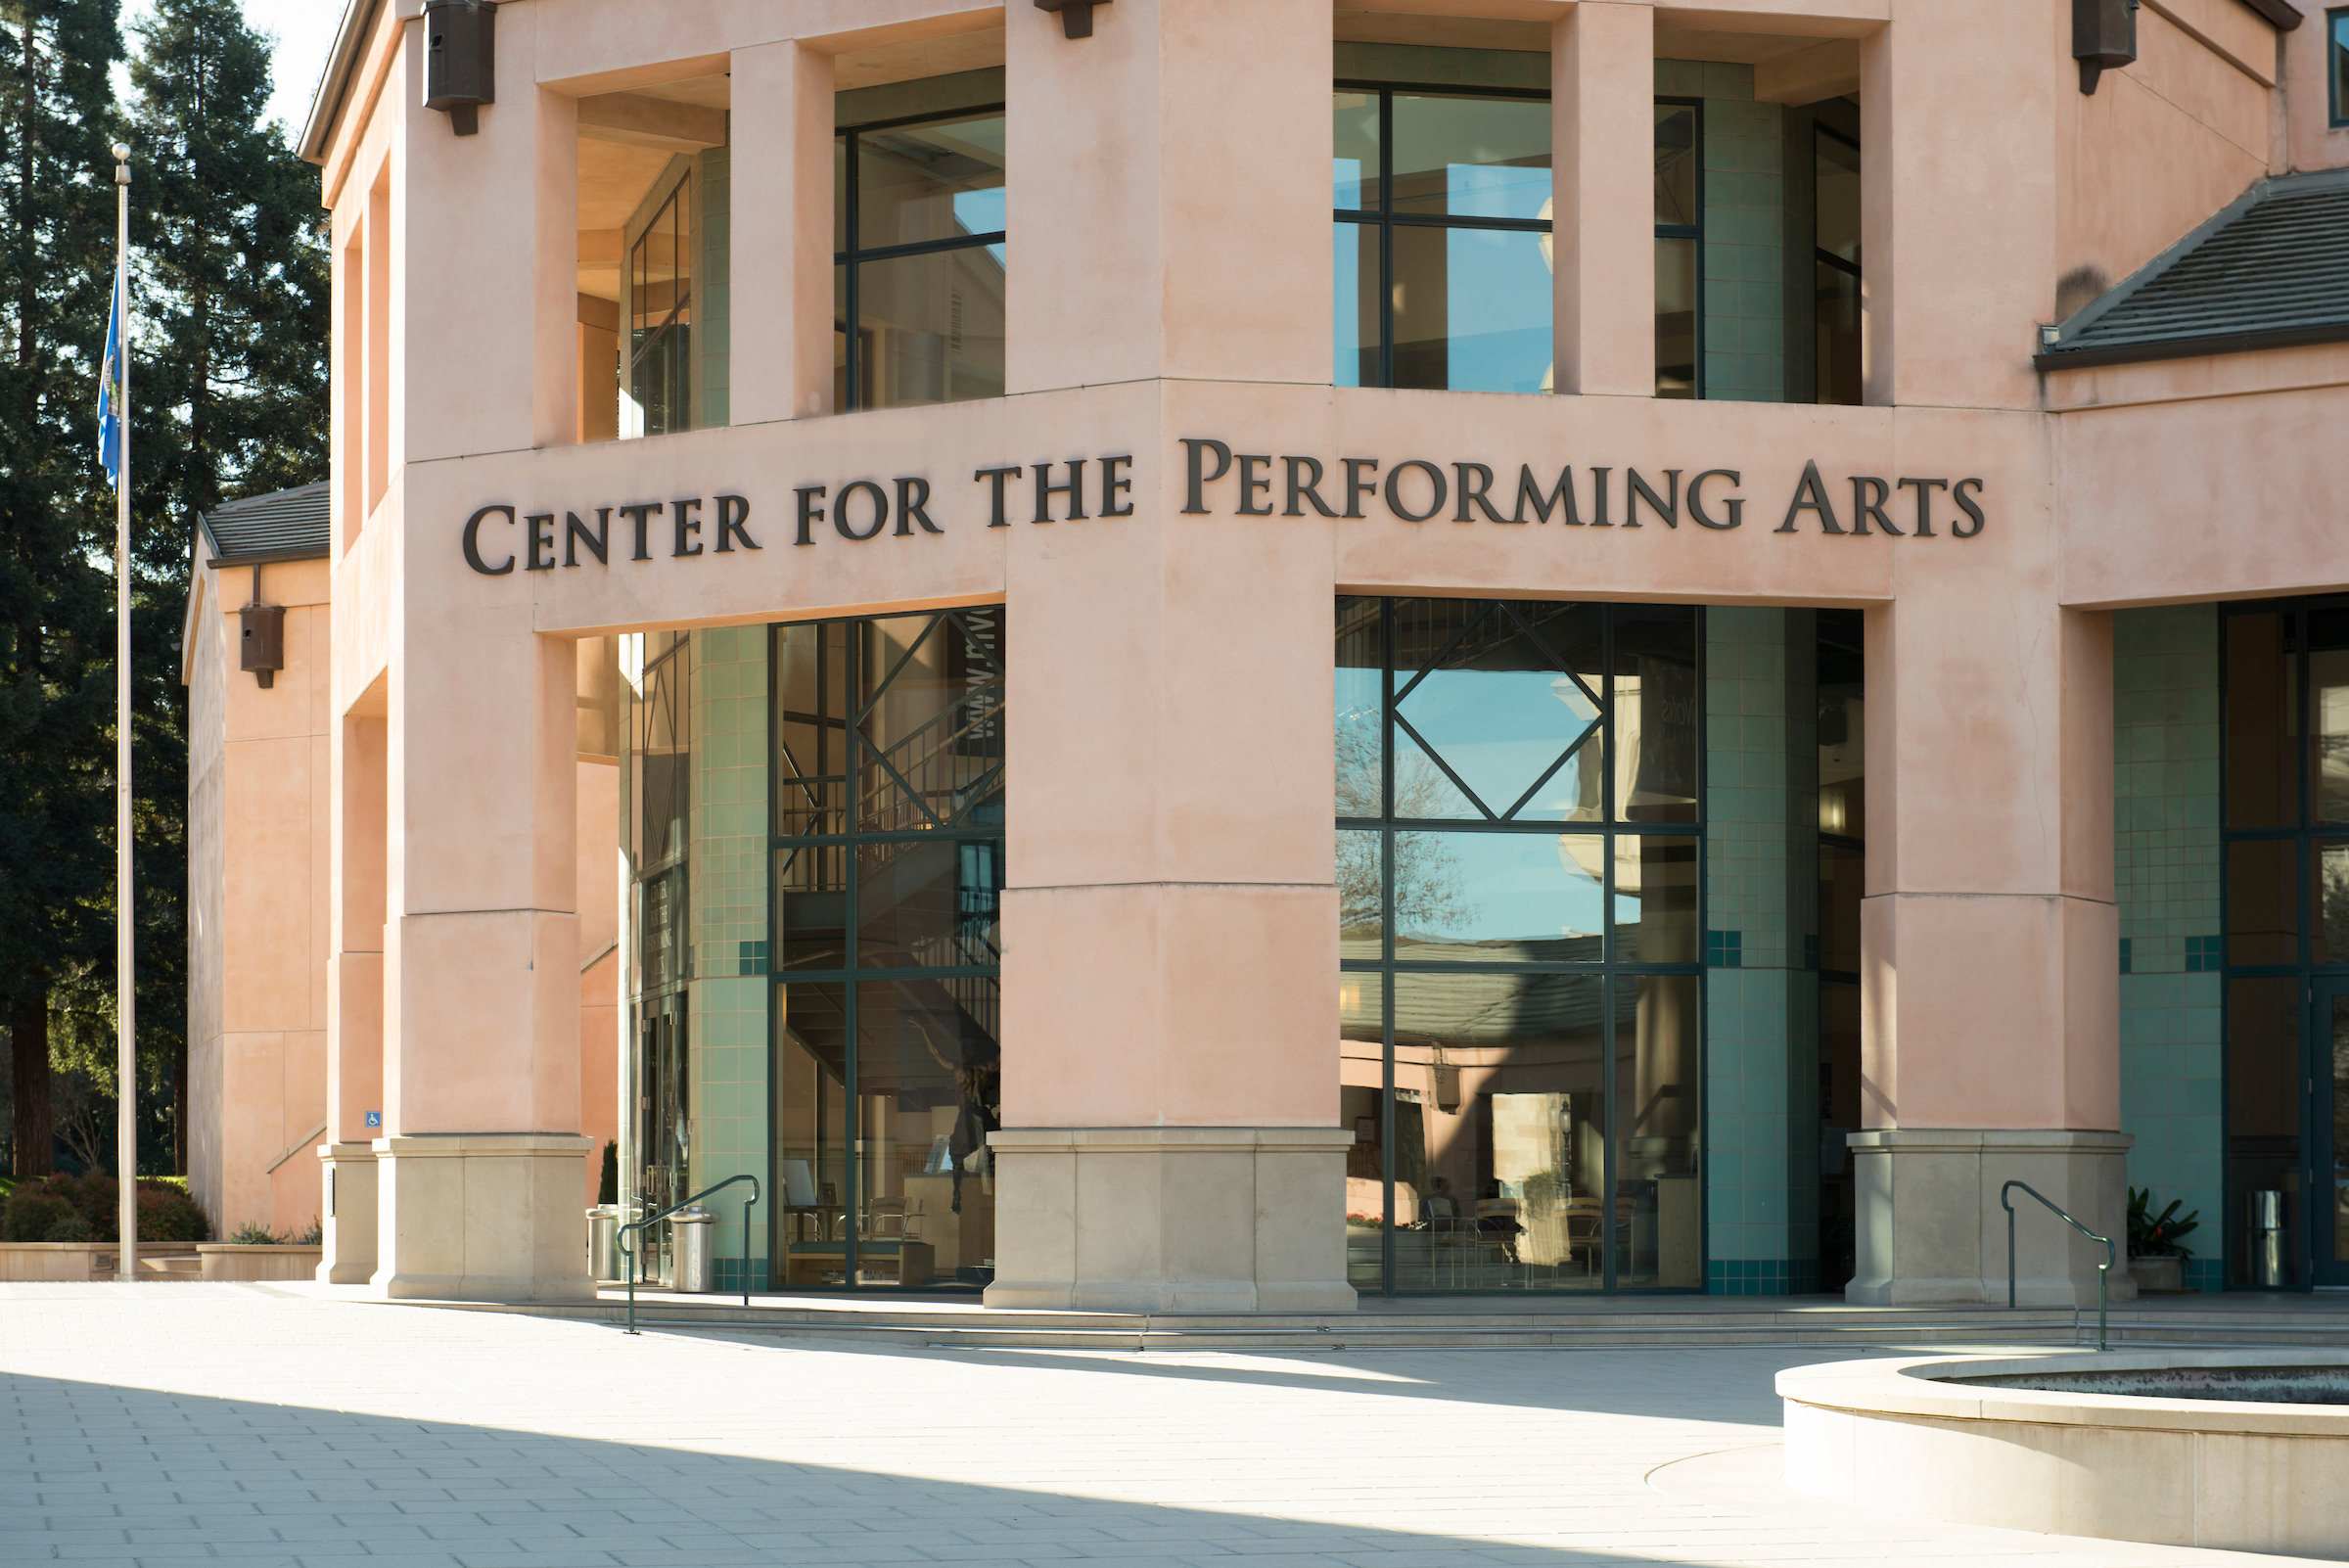 Center for the Performing Arts